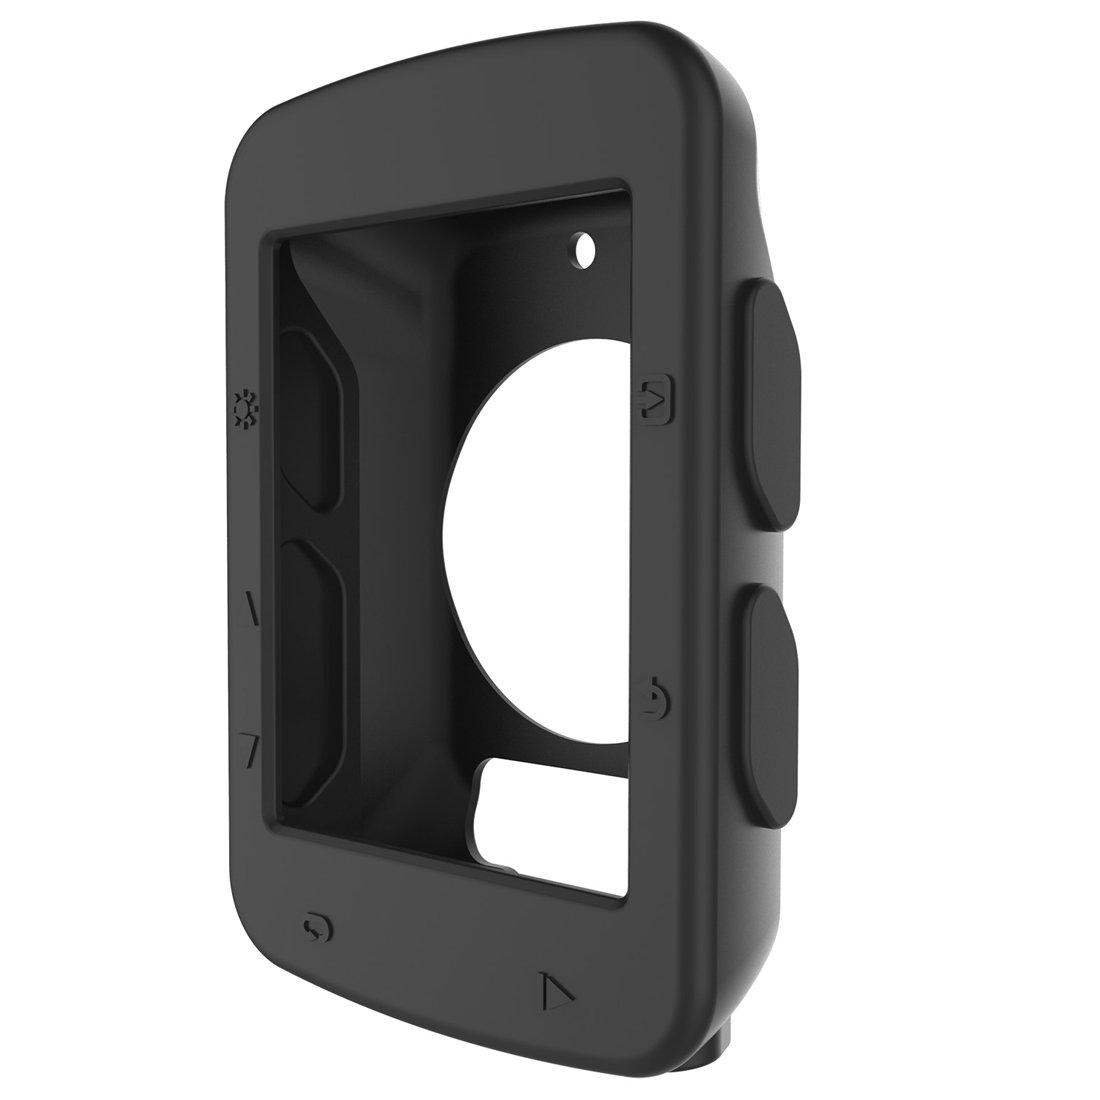 MOTONG Garmin Edge 520 Case - MOTONG Silicone Protective Case For Garmin Edge 520 motong-079